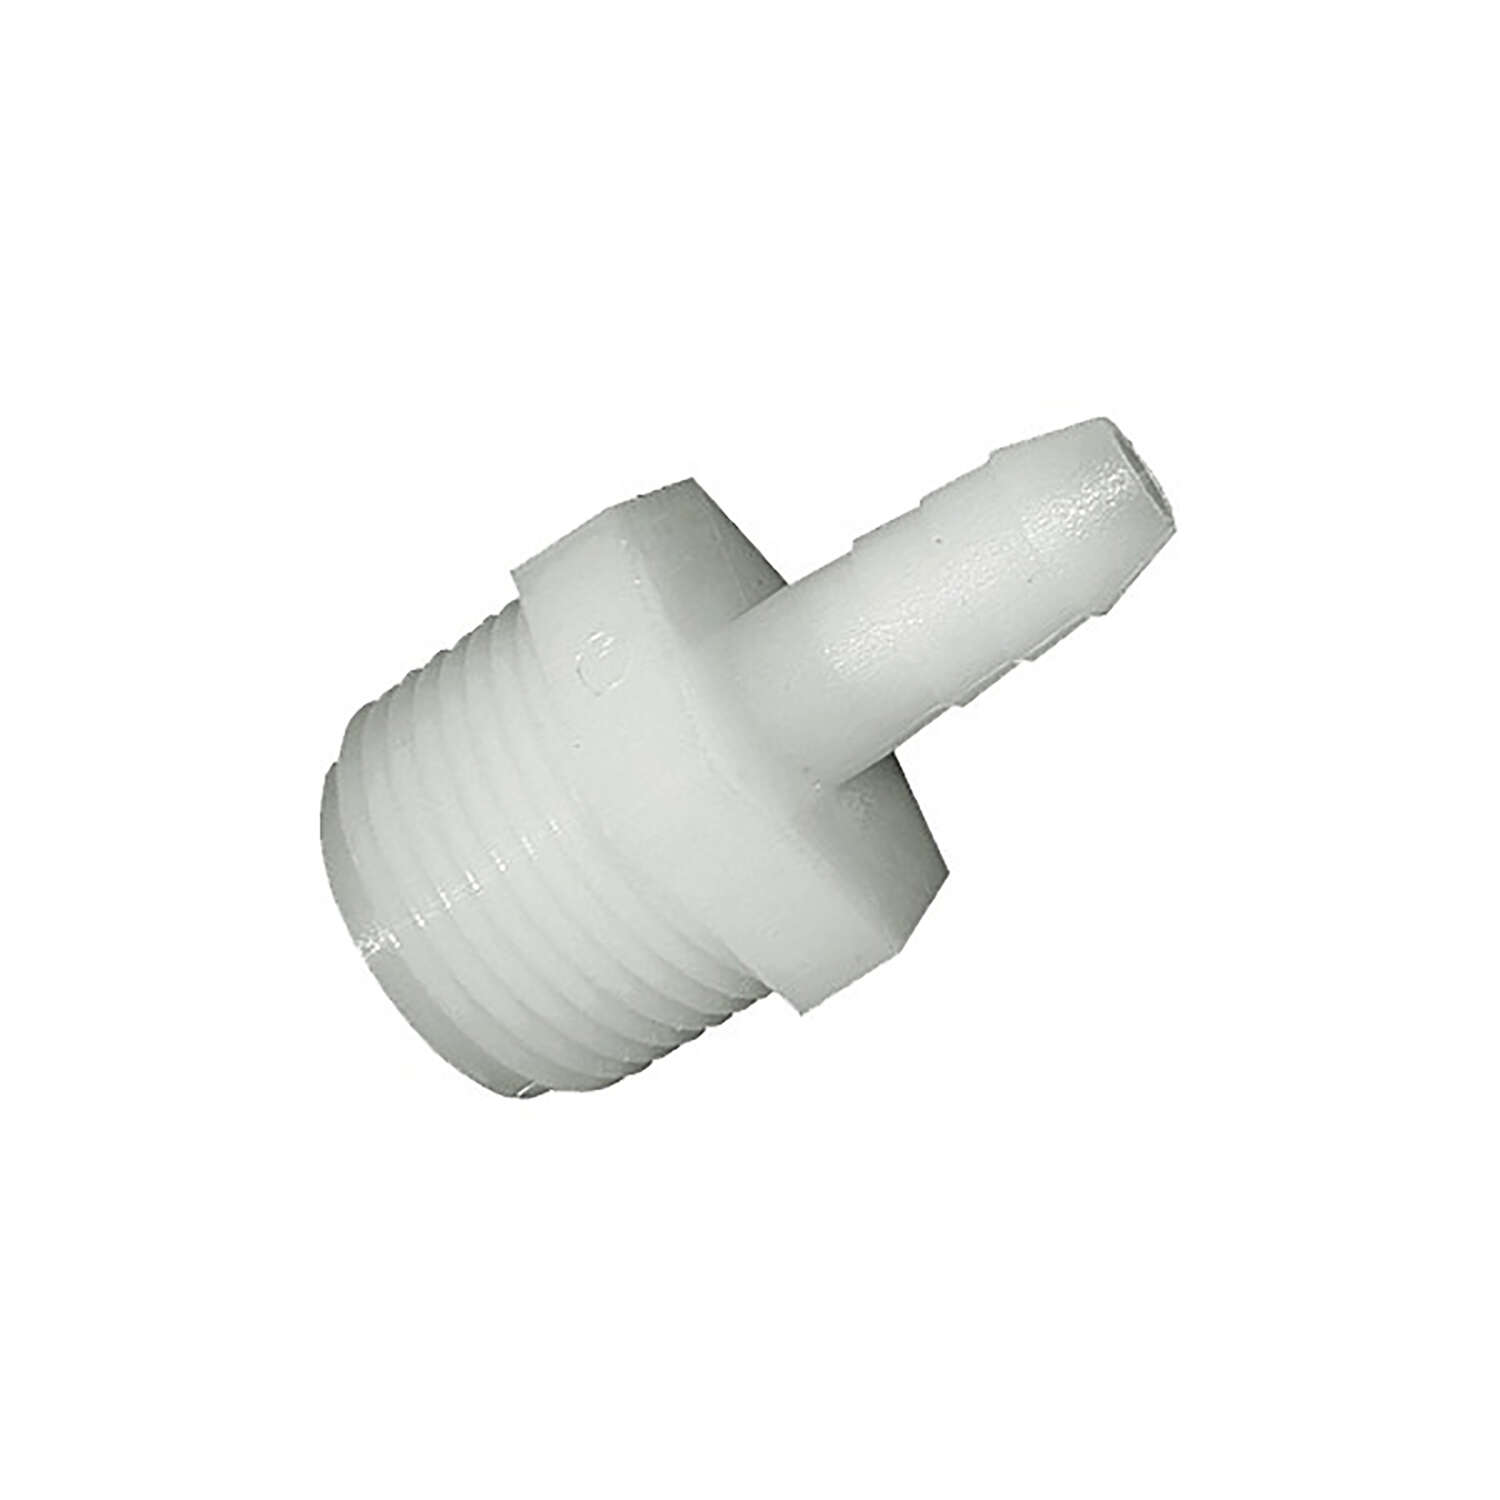 Green Leaf  Nylon  1/2 in. Dia. x 1/2 in. Dia. Adapter  1 pk